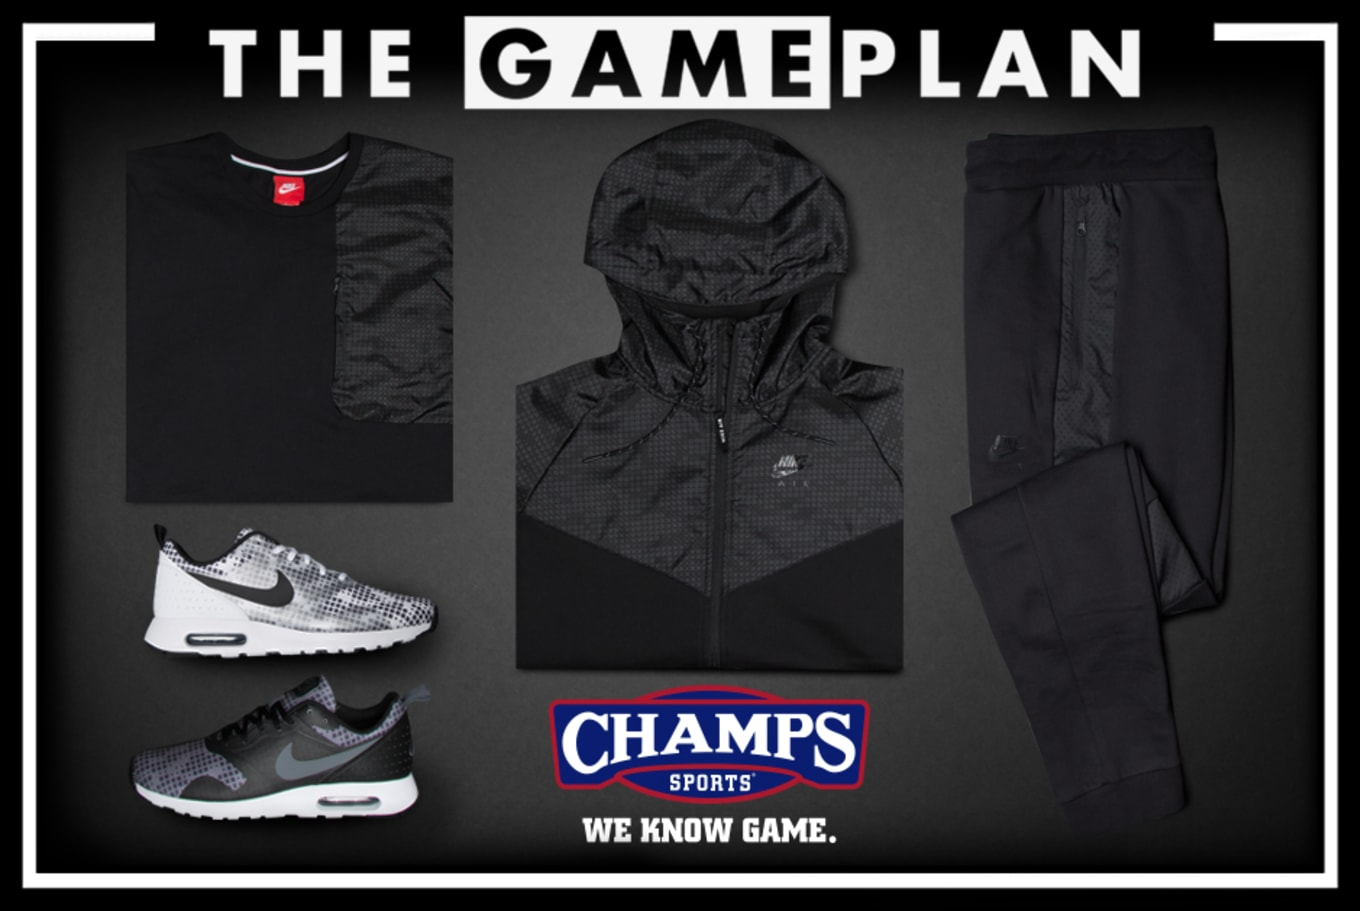 aa66747b422e5 The Game Plan by Champs Sports Presents the Nike Hybrid Collection ...